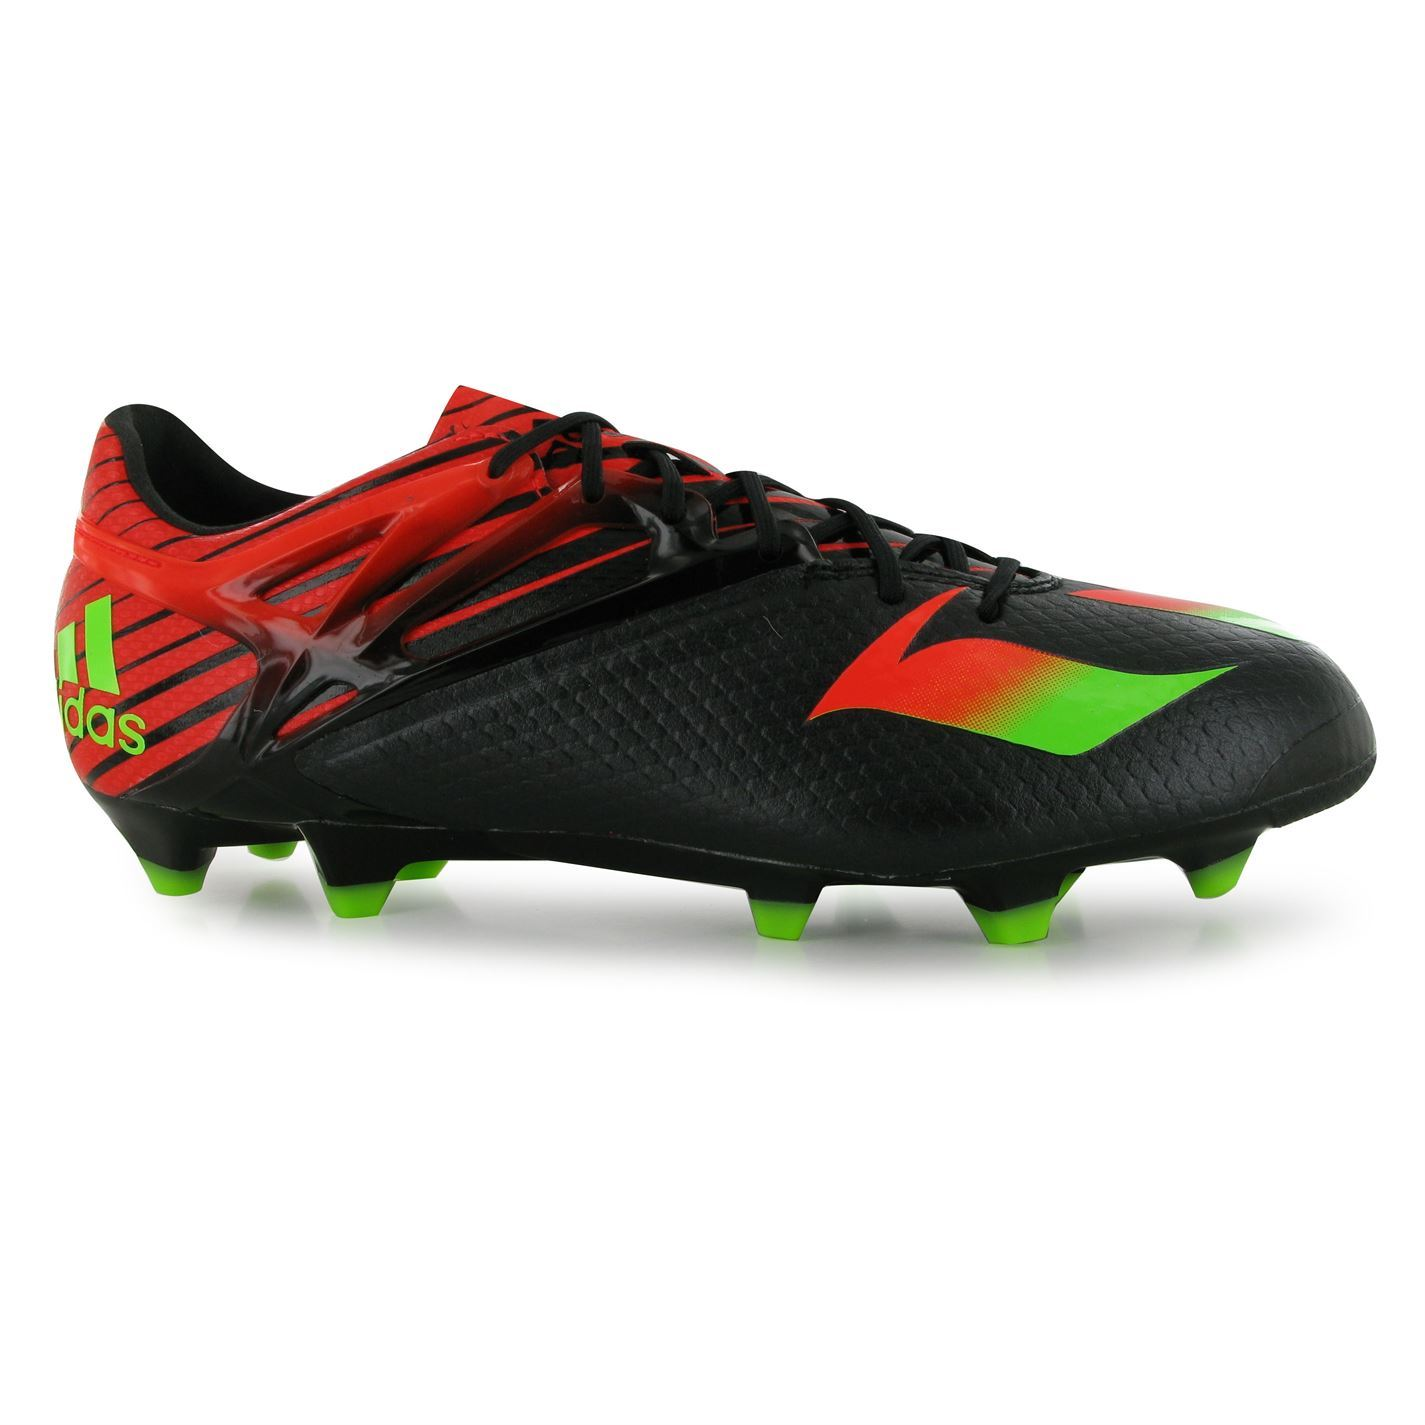 ... adidas Messi 15.1 FG Firm Ground Football Boots Mens Blk/Grn Soccer Cleats  Shoes ...